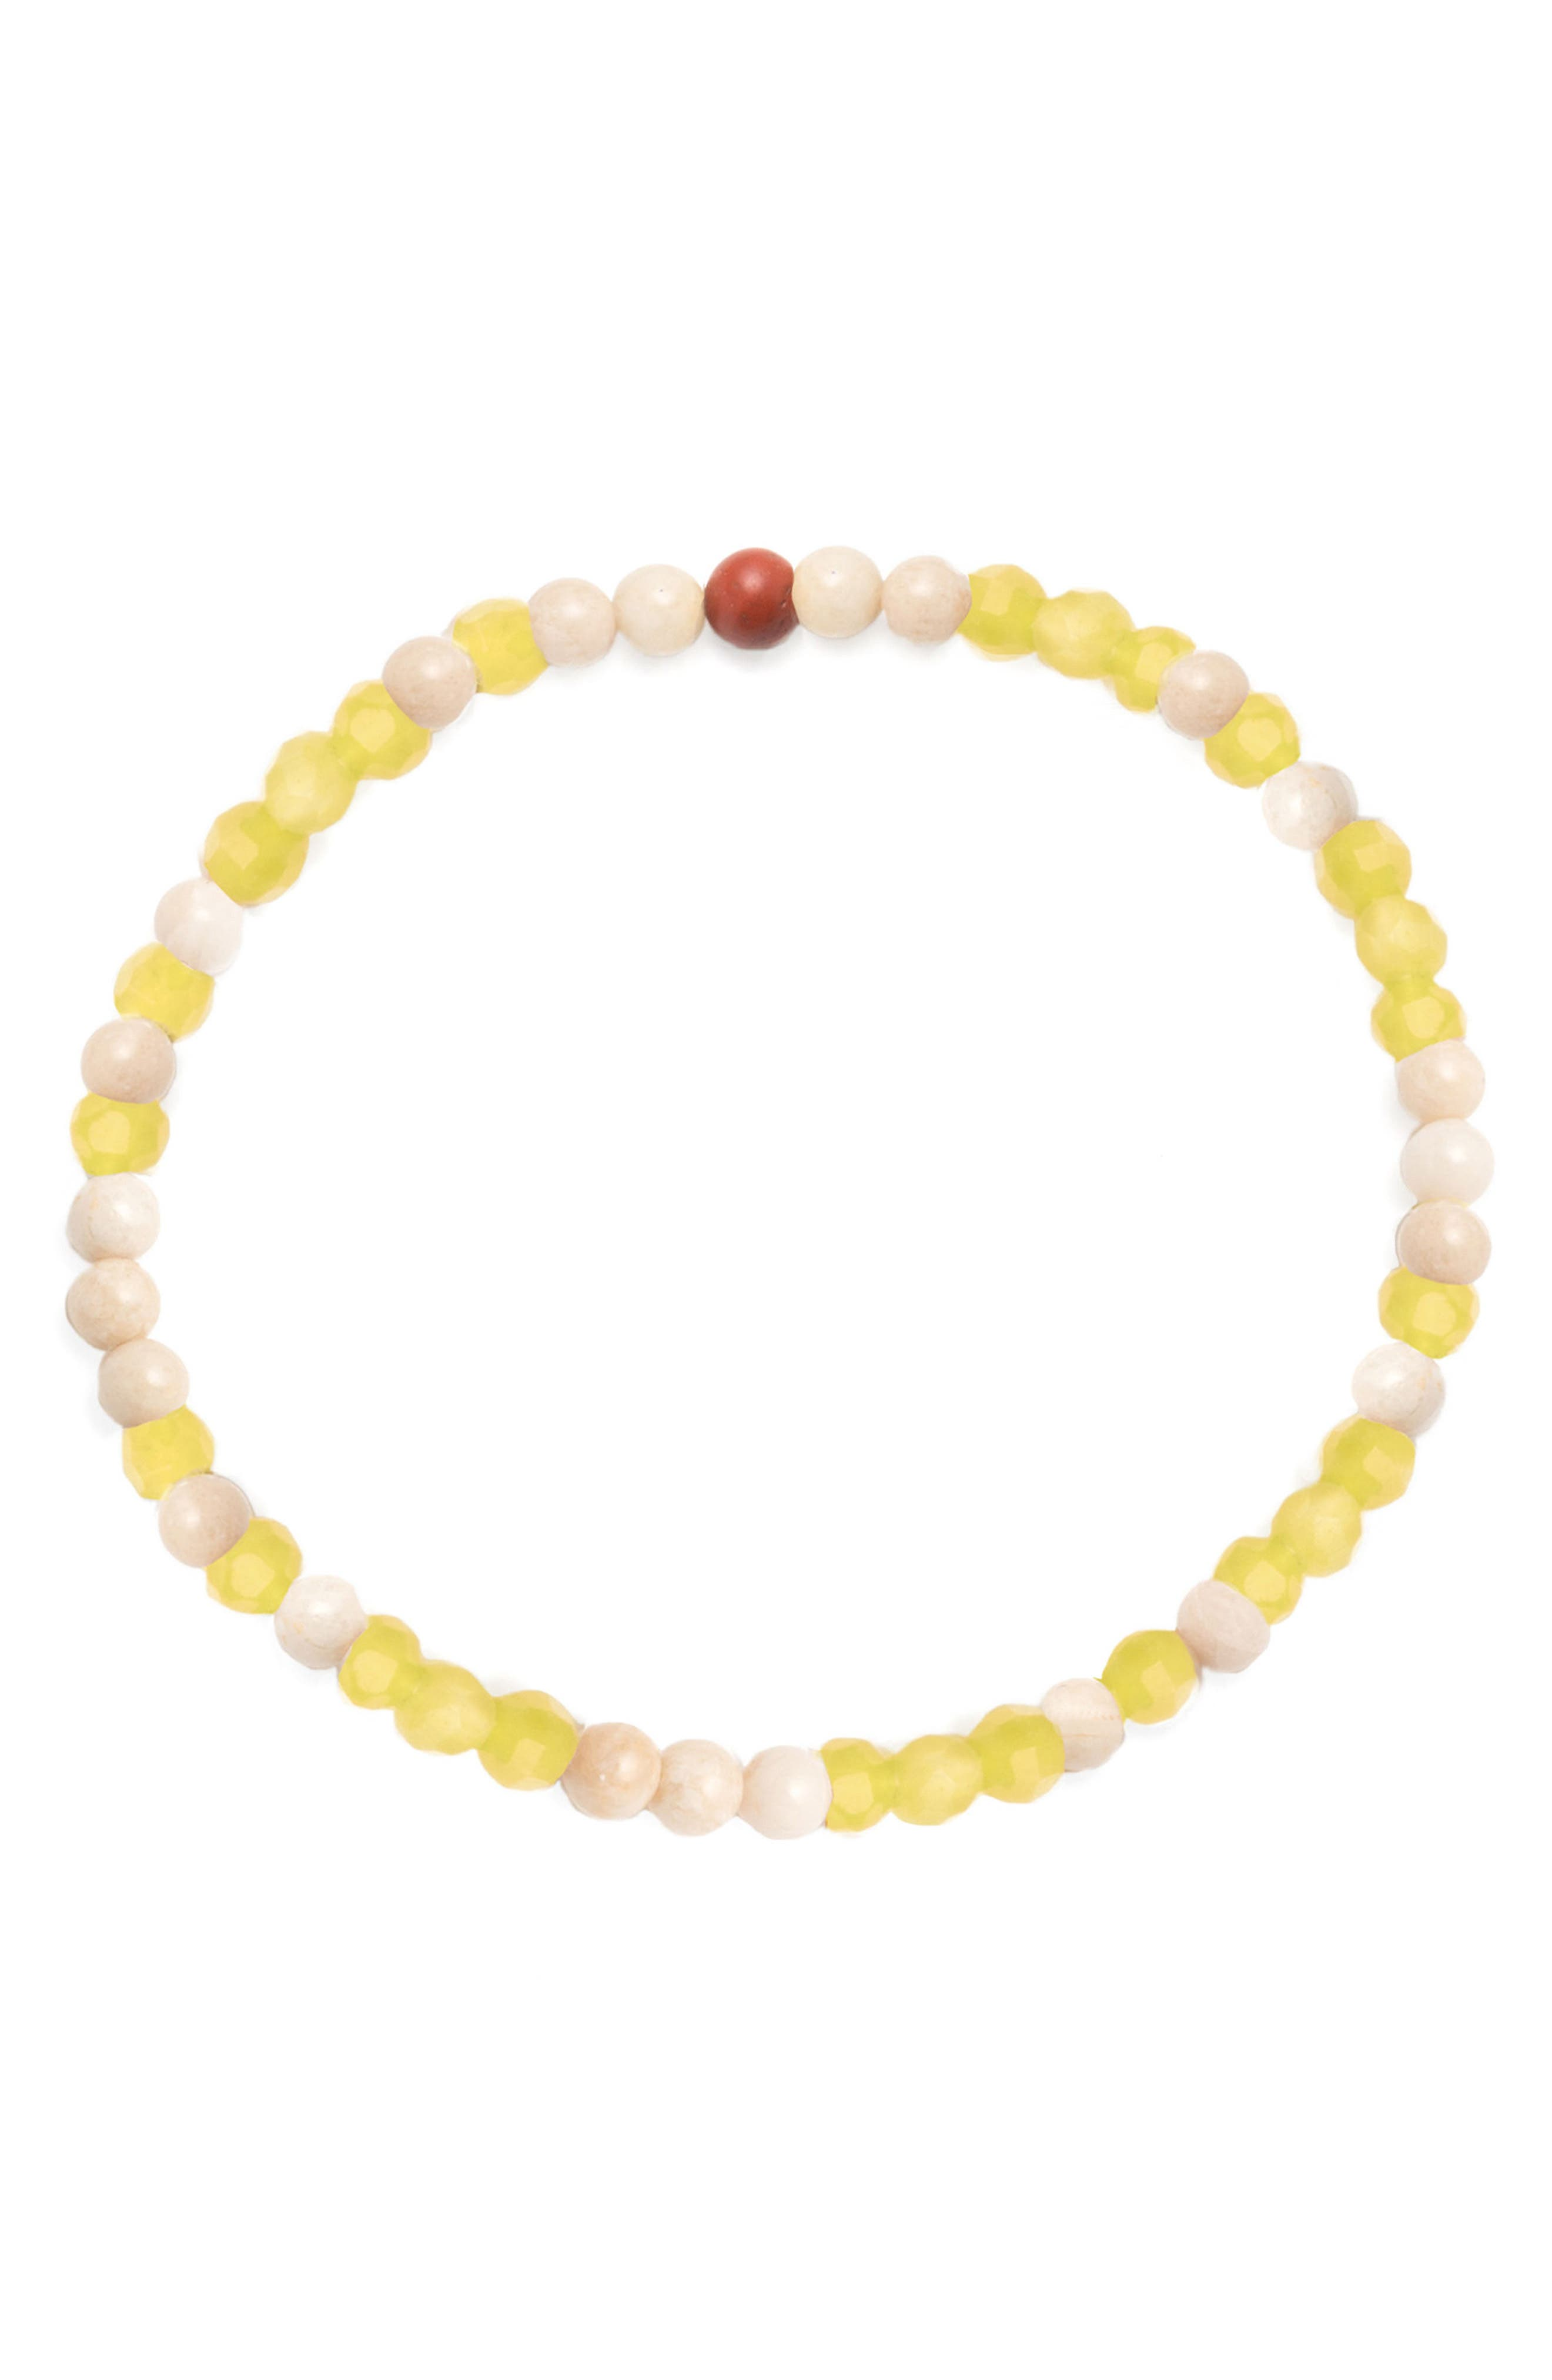 Luck Morse Bracelet,                         Main,                         color, Yellow / White